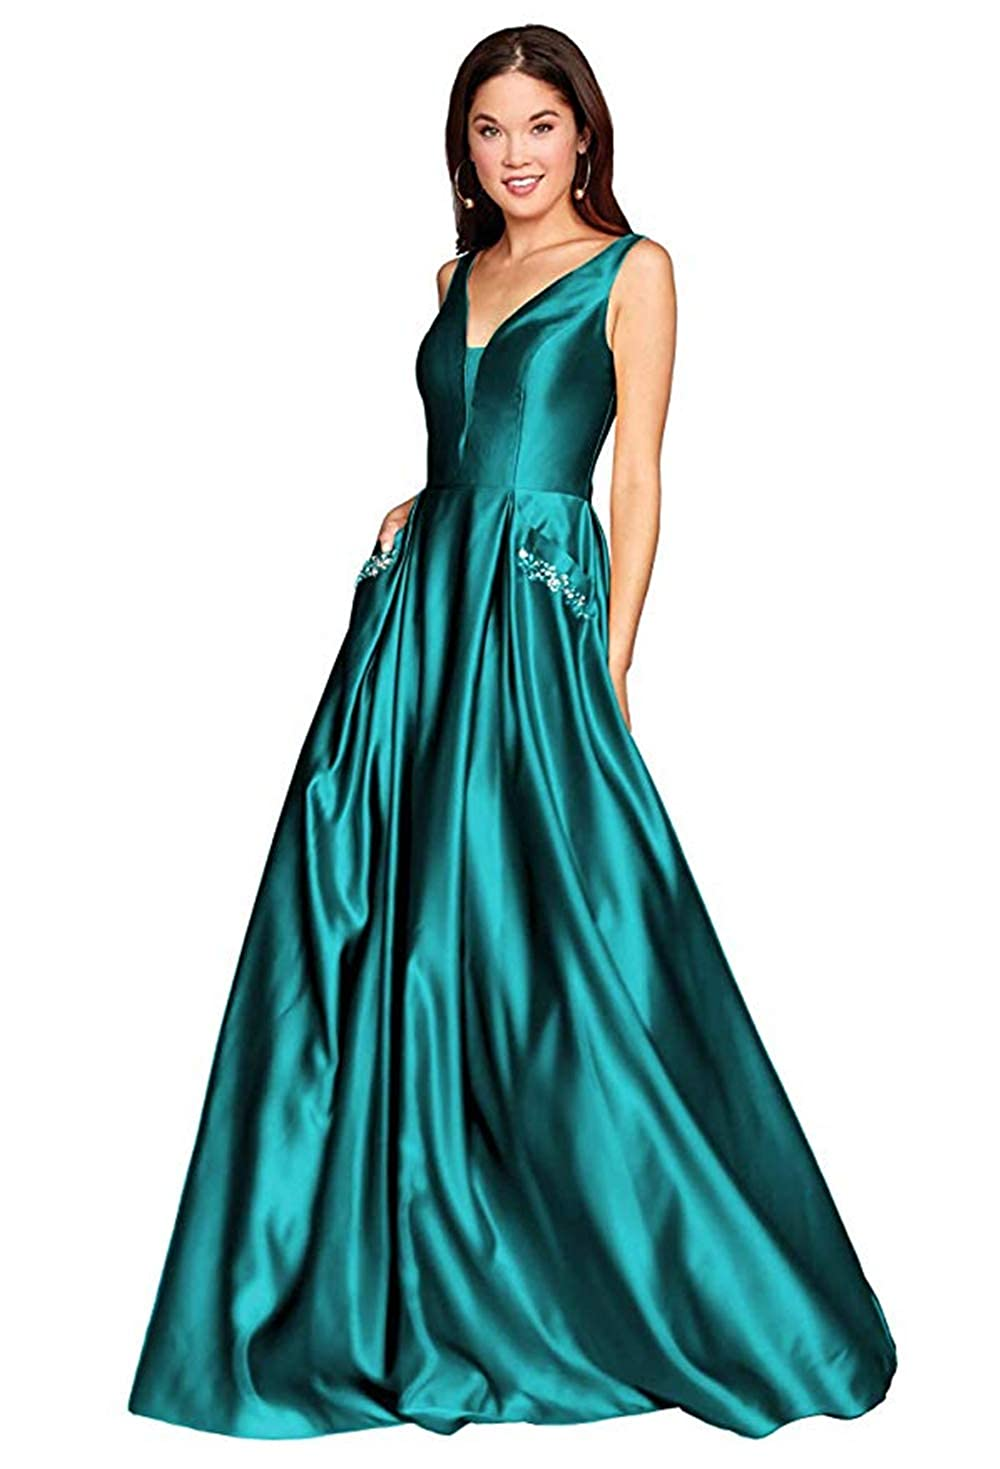 01teal PROMNOVAS Women's V Neck Backless Beaded Satin Prom Dress Long Formal Evening Gown with Pockets